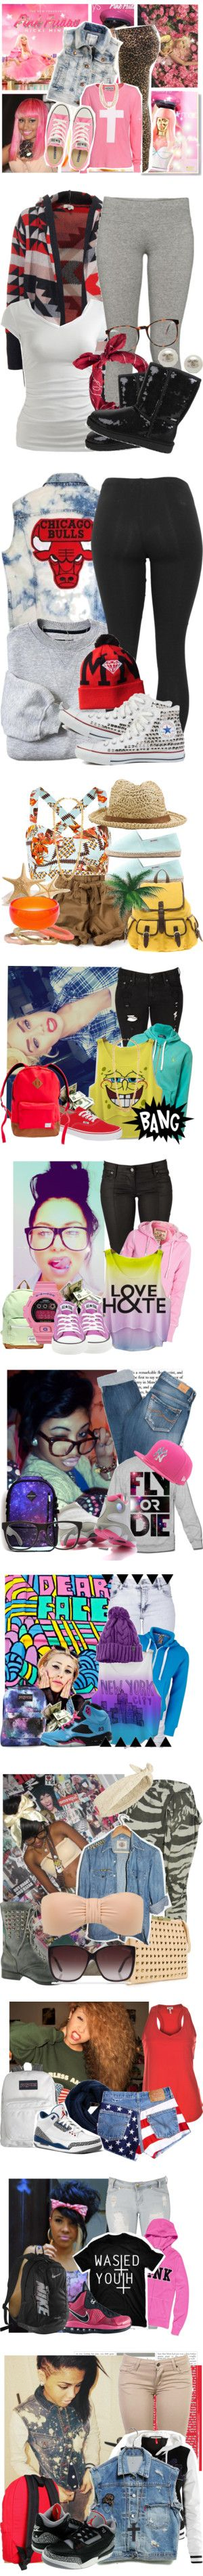 """Swagg Part 10"" by littlemissdeaja ❤ liked on Polyvore"